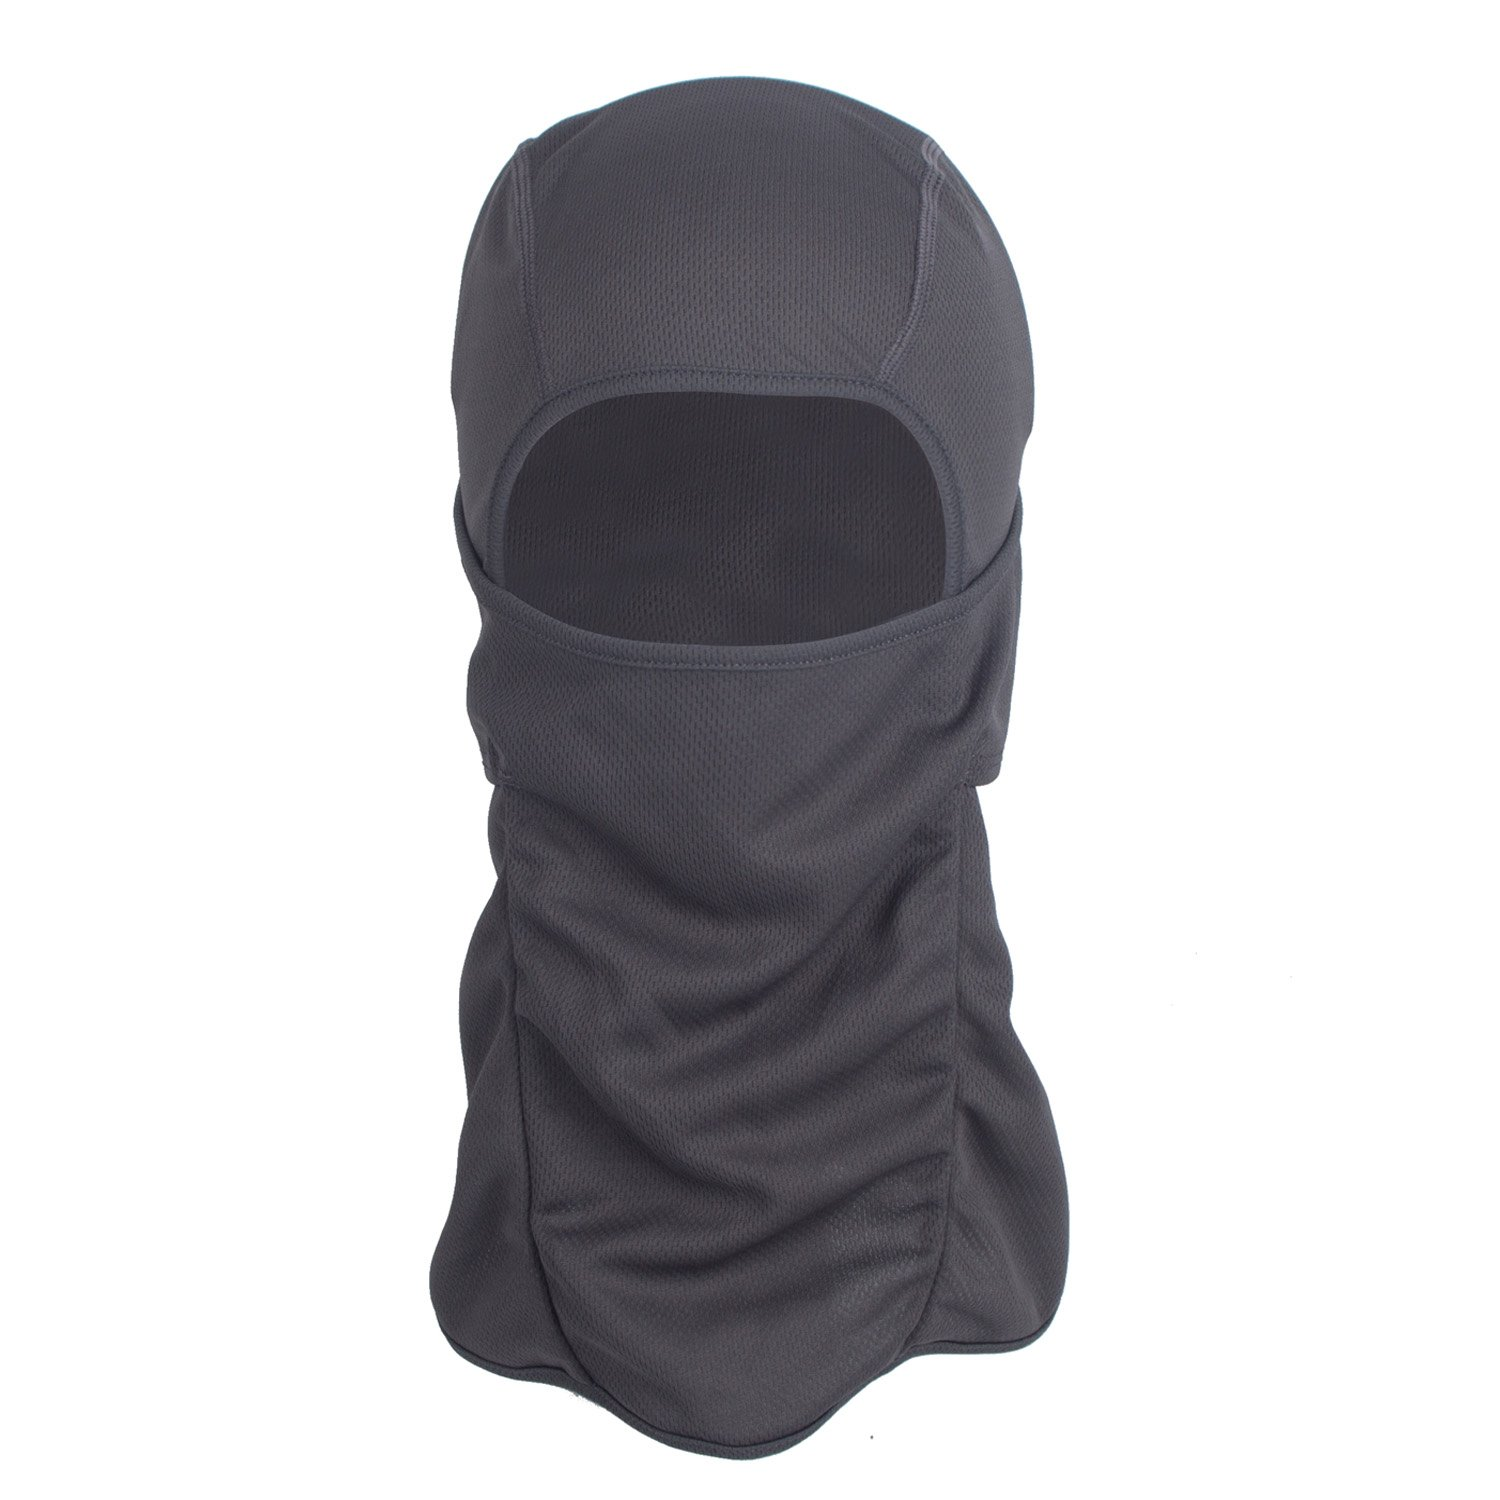 SLTY Balaclava Windproof Ski Face Mask Cold Weather Outdoor Sports Headwear